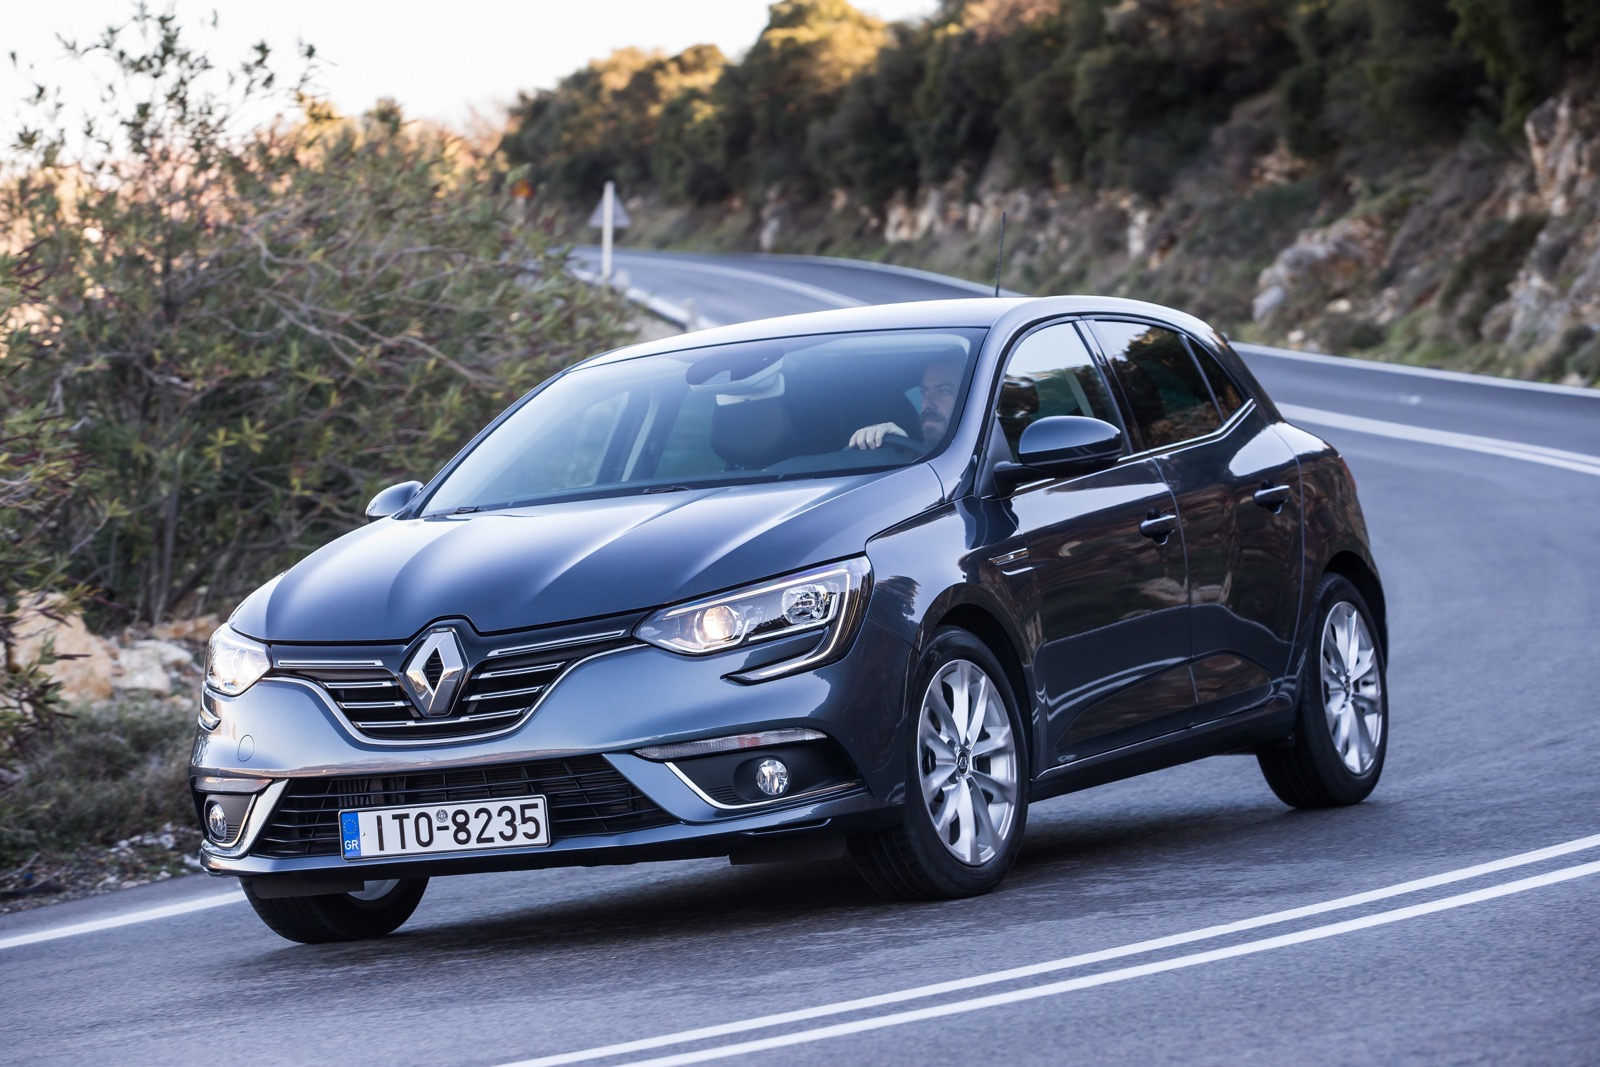 First_Drive_Renault_Megane_63